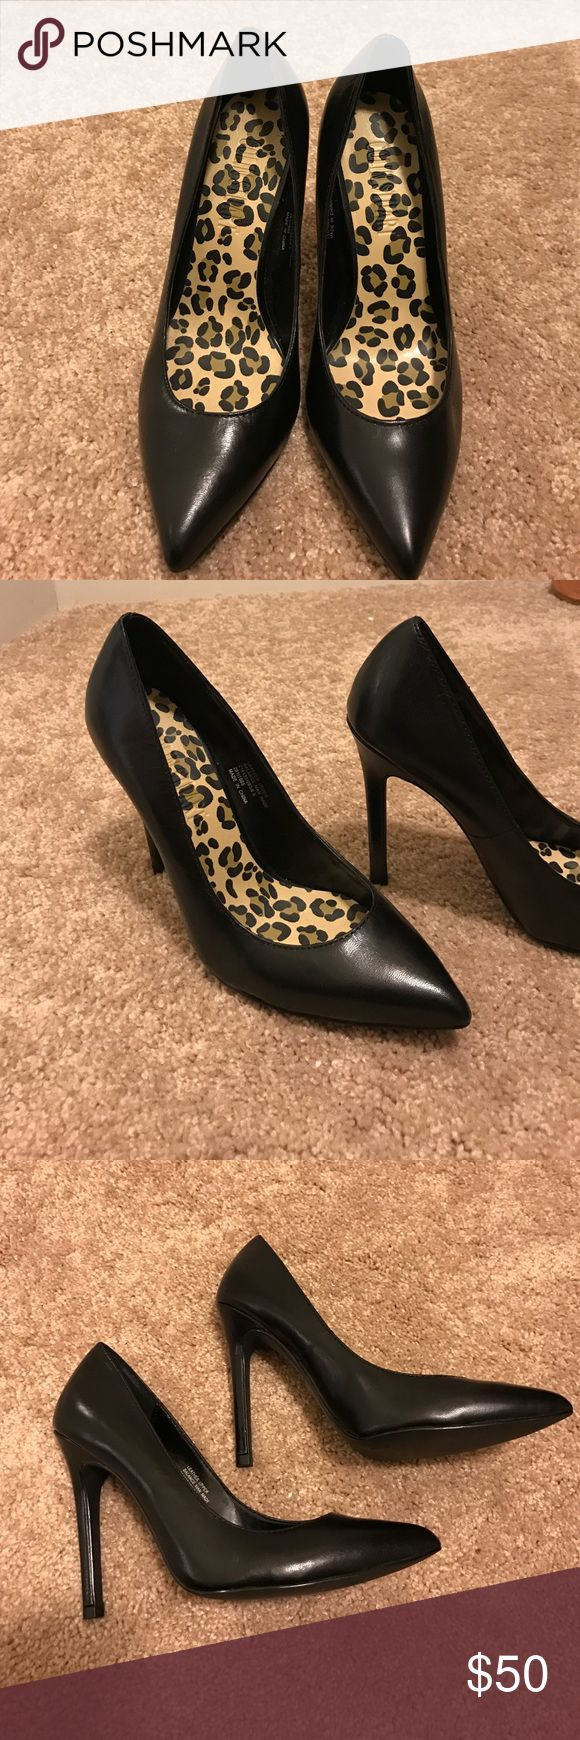 Colin Stuart high heels Colin Stuart high heels. Worn once in perfect condition Colin Stuart Shoes Heels